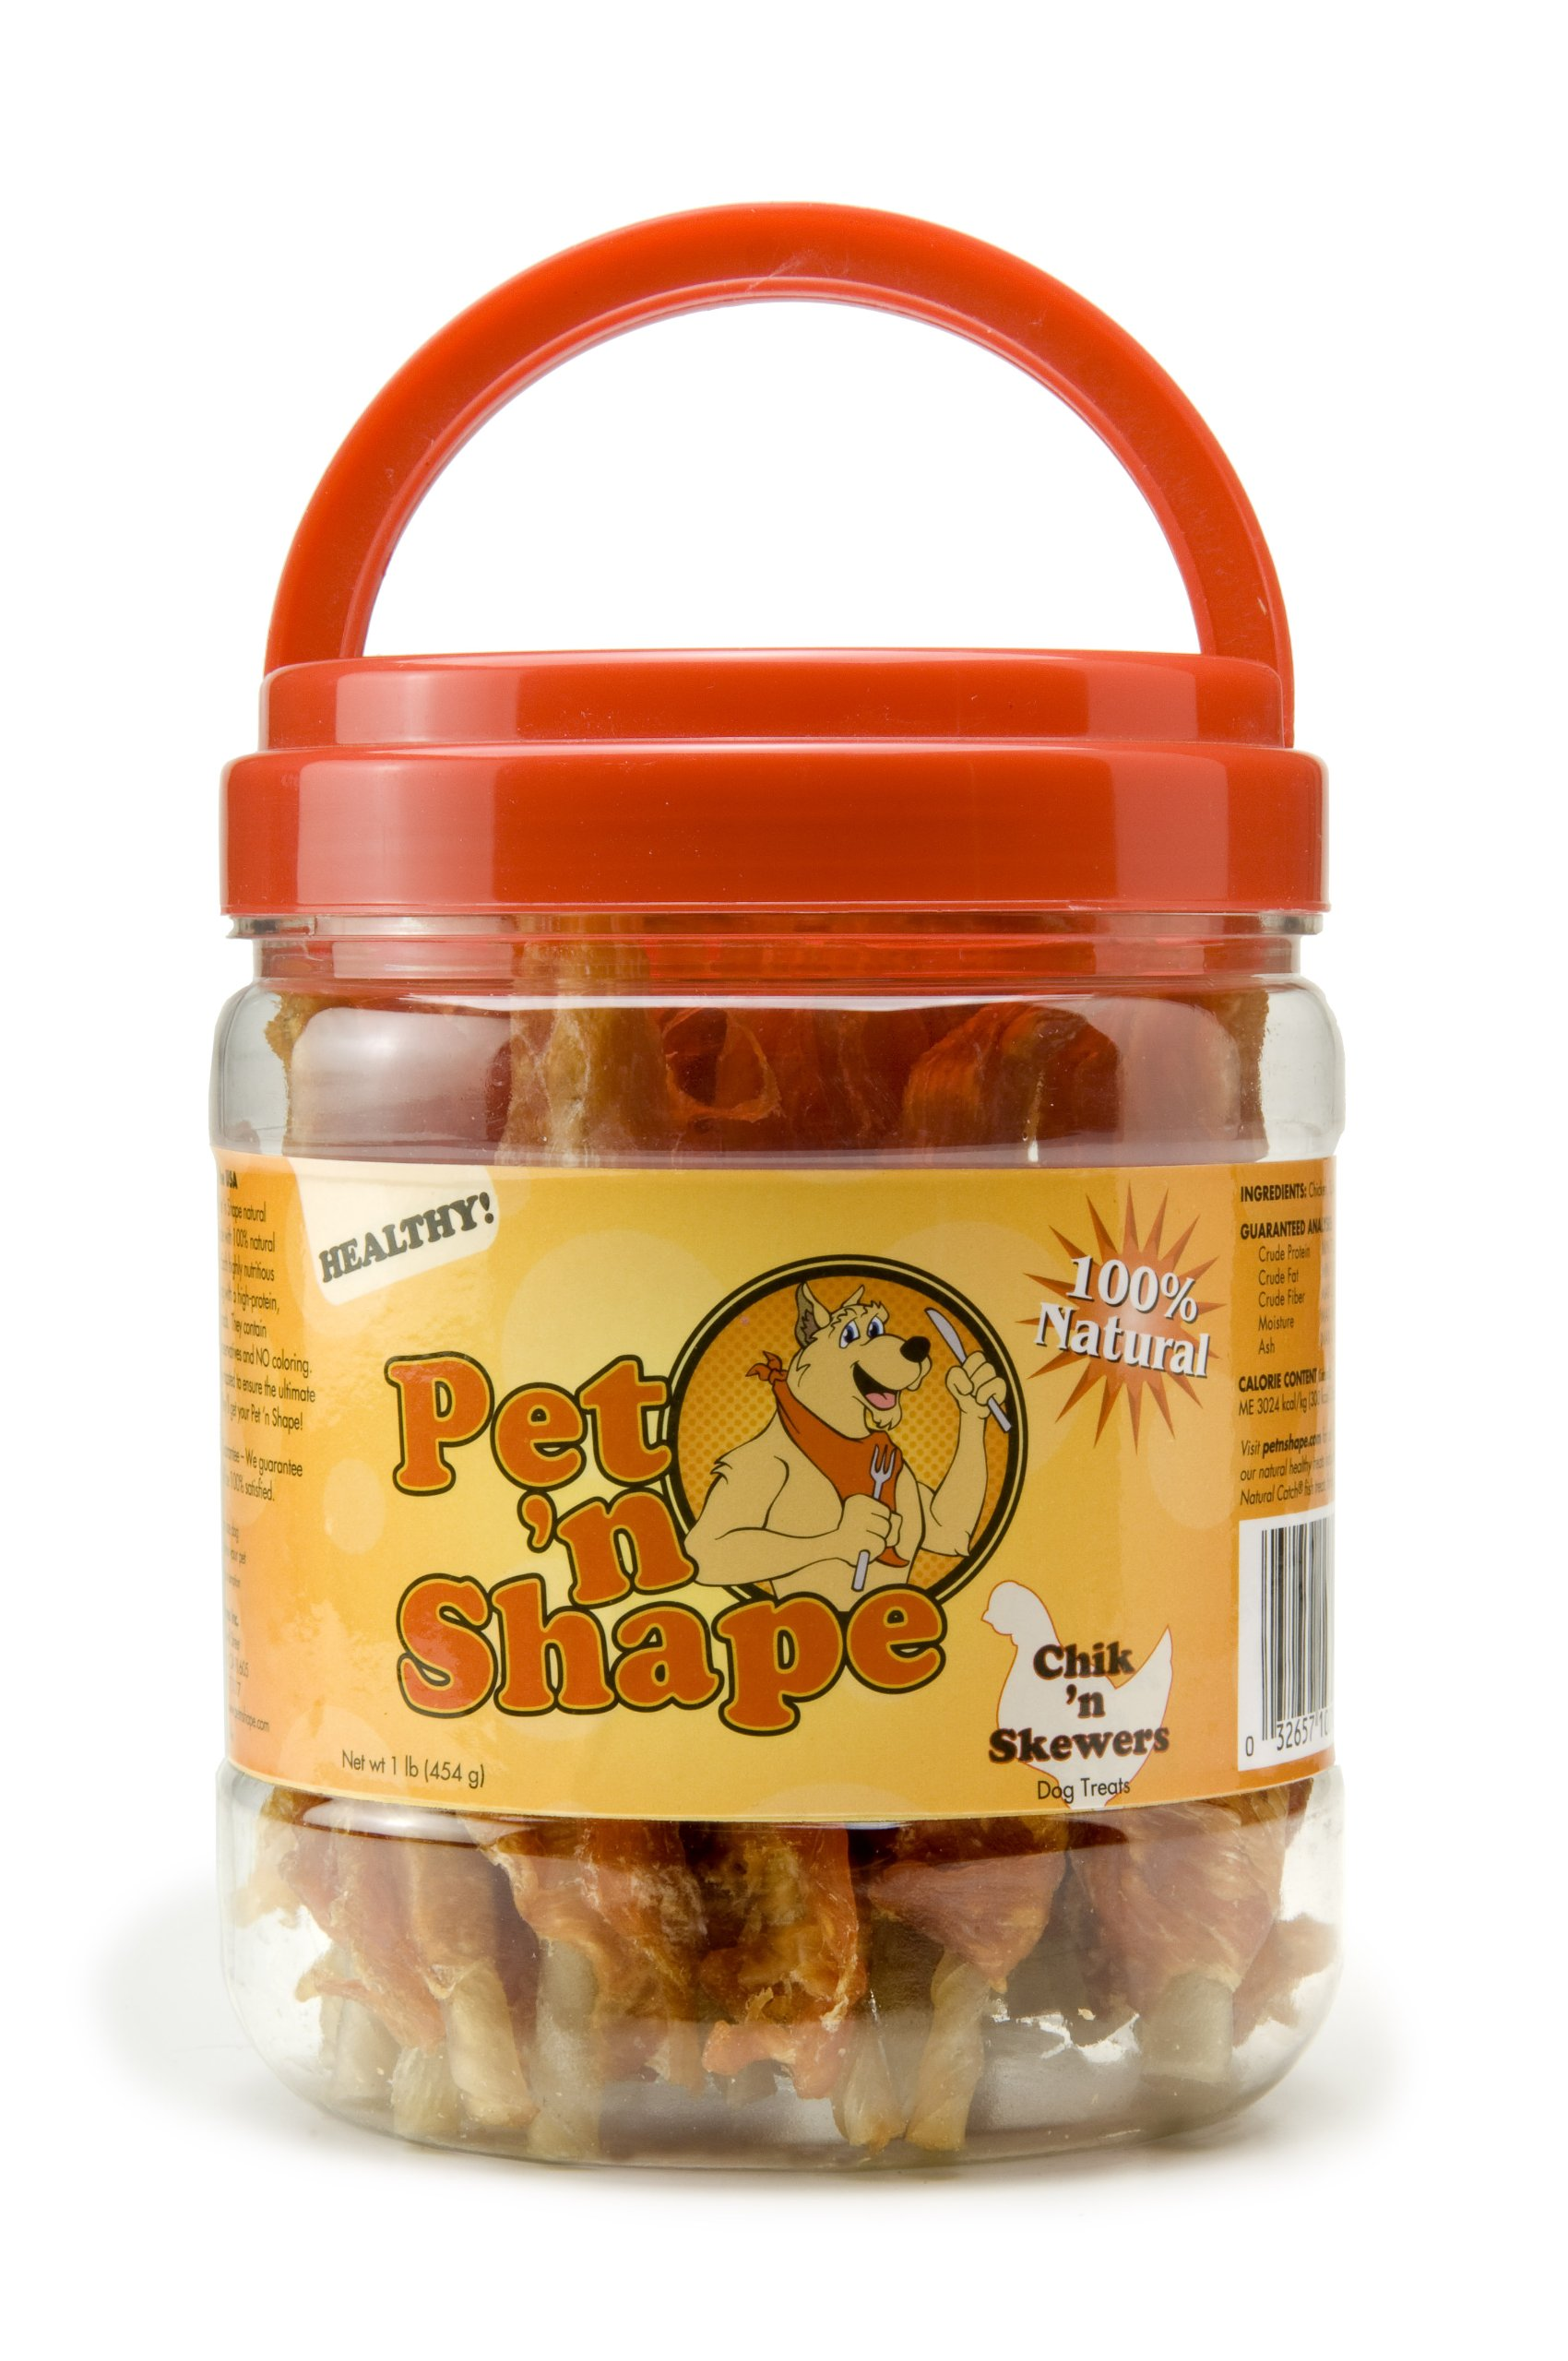 Pet 'n Shape All Natural Chik'n or Duck Skewers, Dog Treats